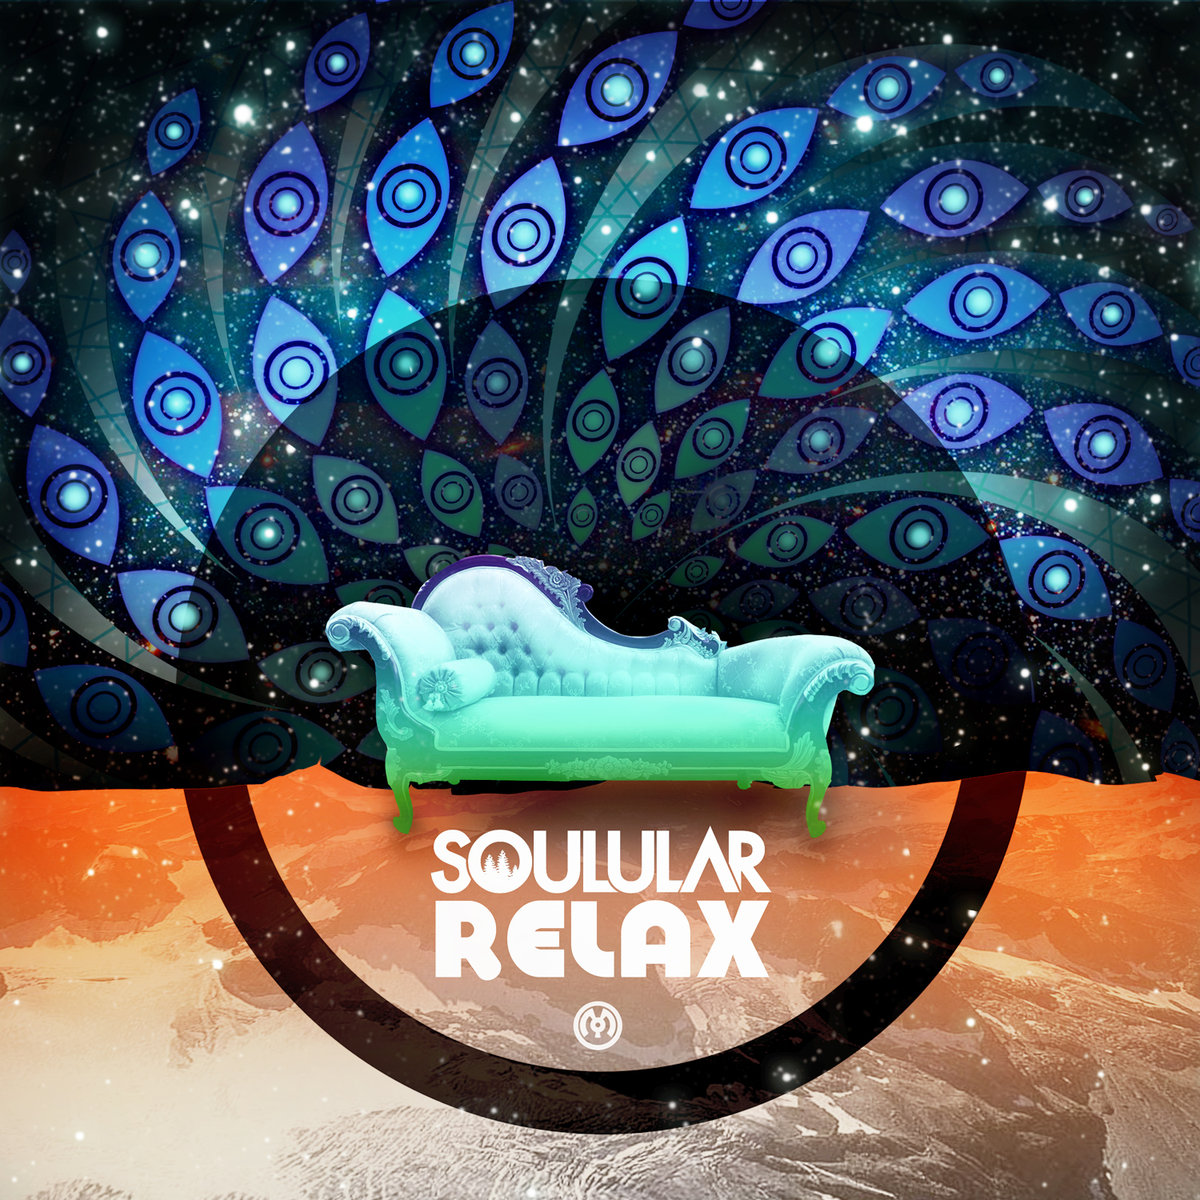 Soulular - Cleaner Vision @ 'Relax' album (electronic, dubstep)